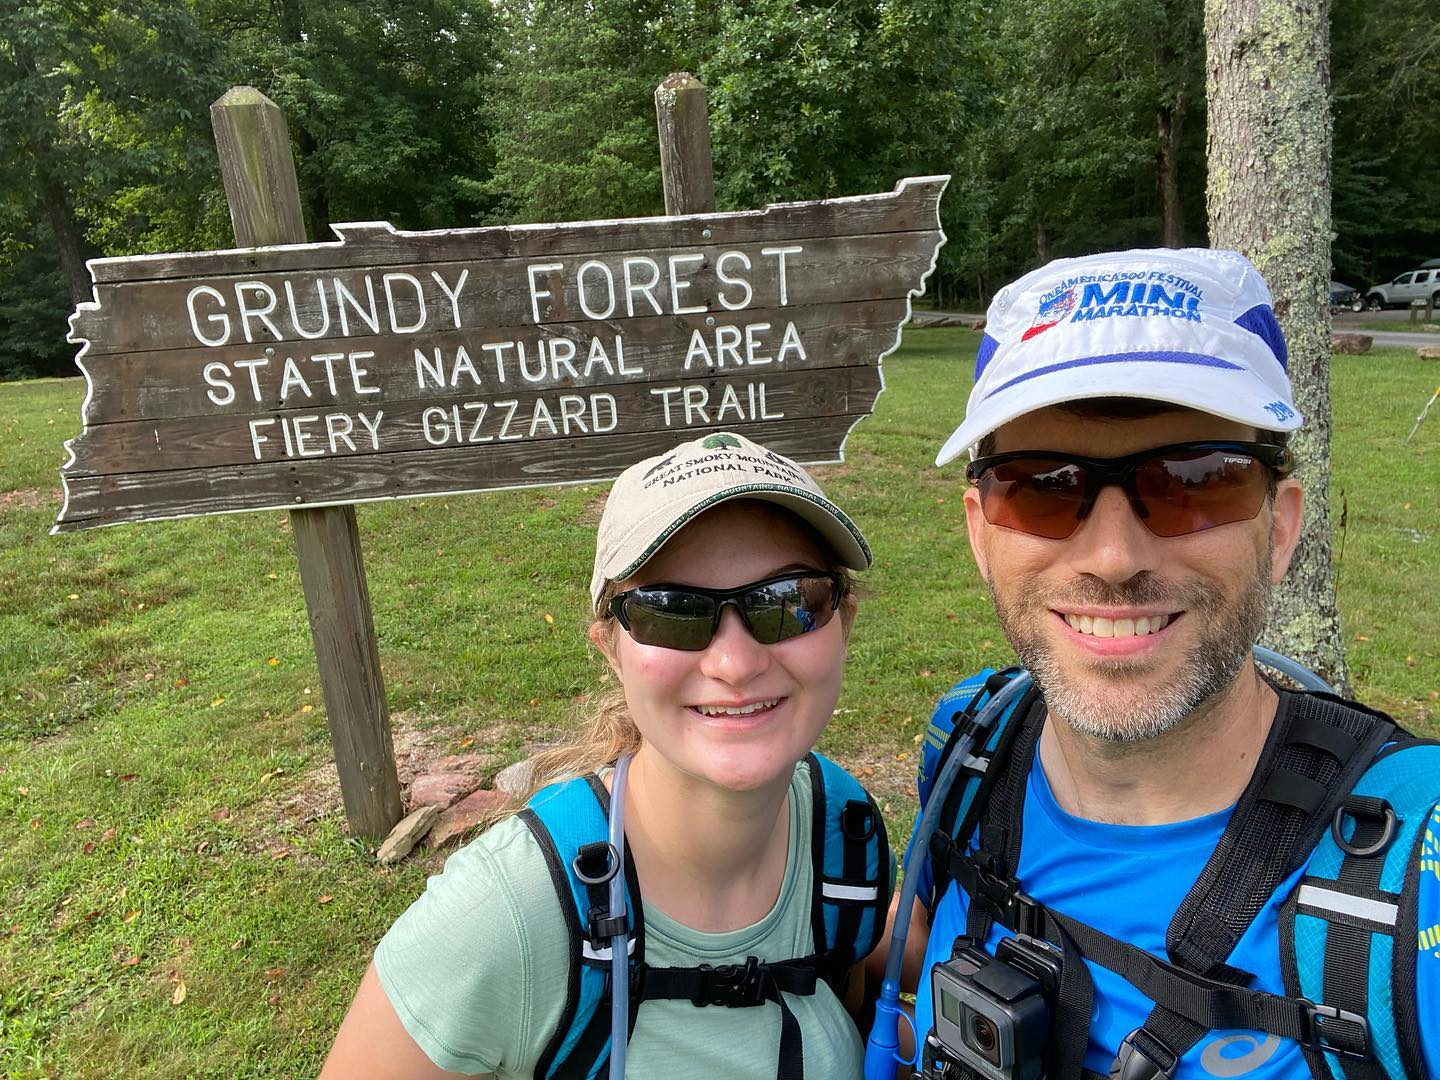 Yesterday Kate and I hiked the Fiery Gizzard trail to Raven Point (and back) for a total of 12 miles. Definitely the most technical trail I've ever tried, but it was a lot of fun experiencing it with my daughter. #hiking #family #fierygizzard